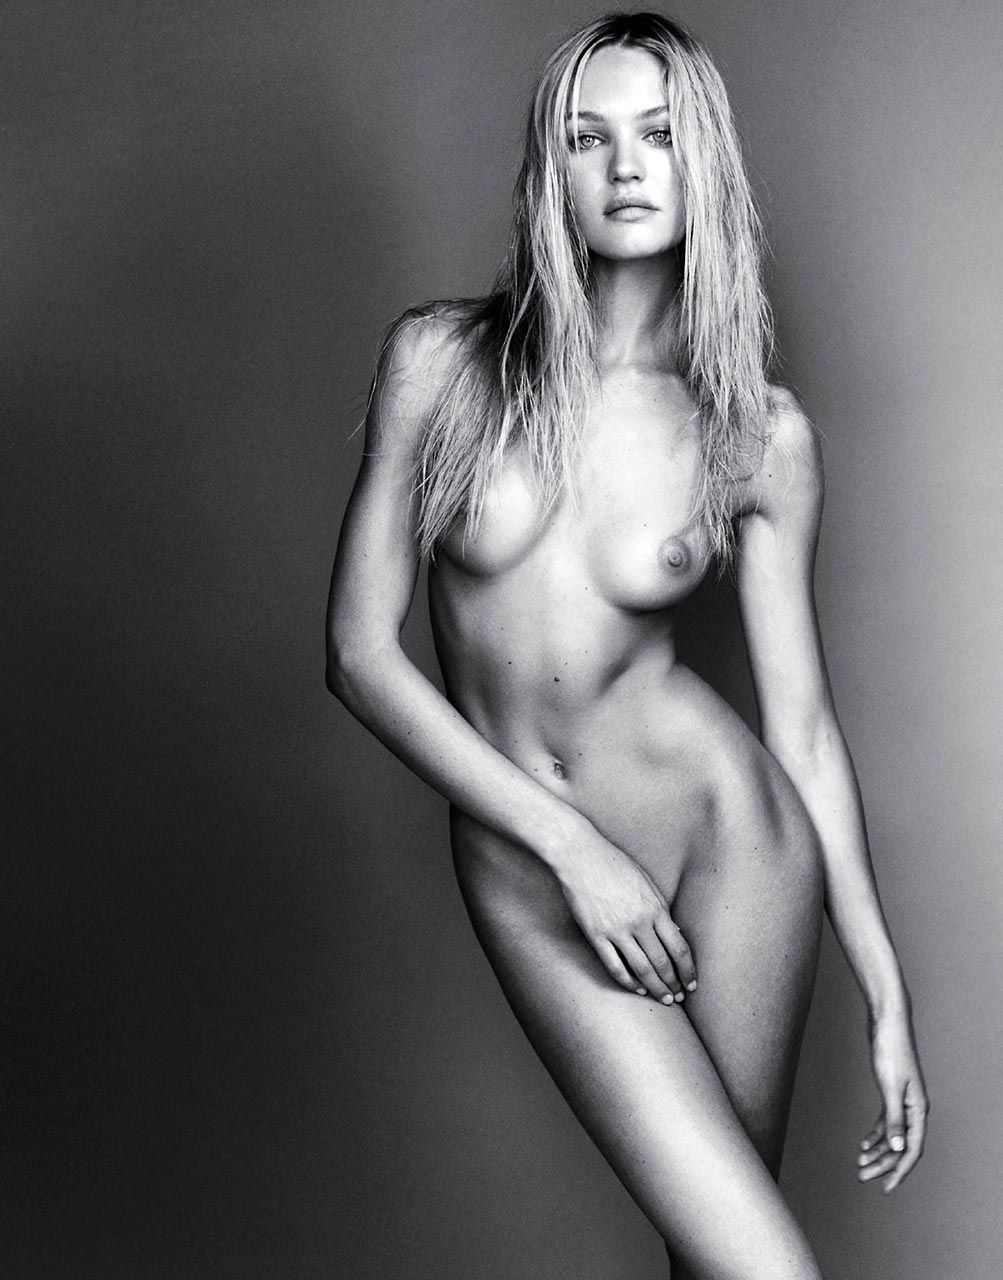 Candice Swanepoel Nude Leaked The Fappening & Sexy (69)